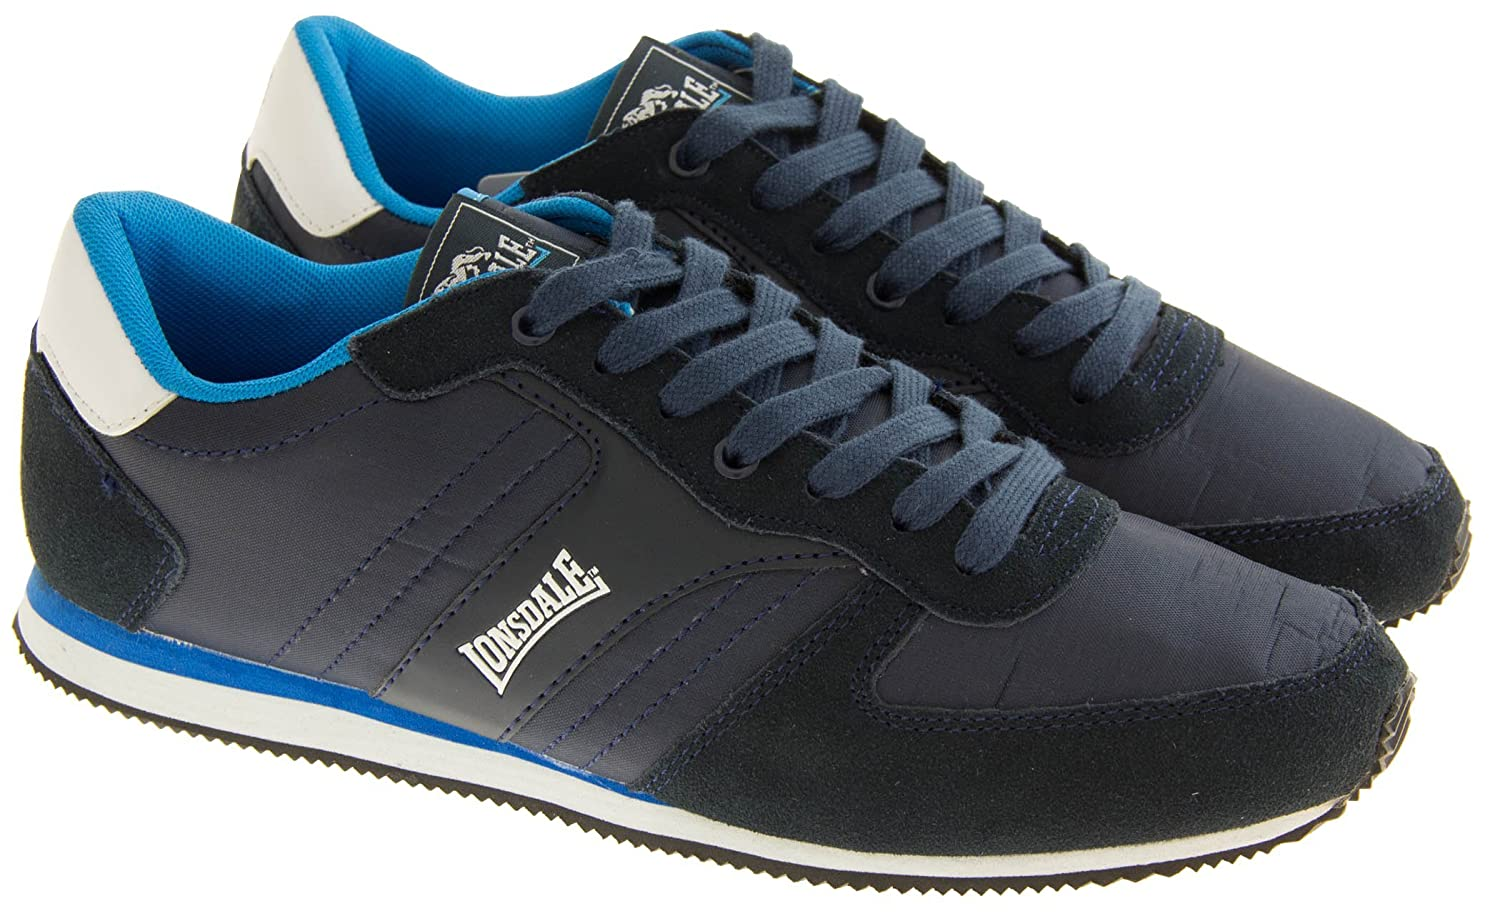 big sale 76f48 d24b5 Footwear Studio Lonsdale Mens Navy Suede Leather Textile Lace Up Casual  Trainers 9 UK Amazon.co.uk Shoes  Bags